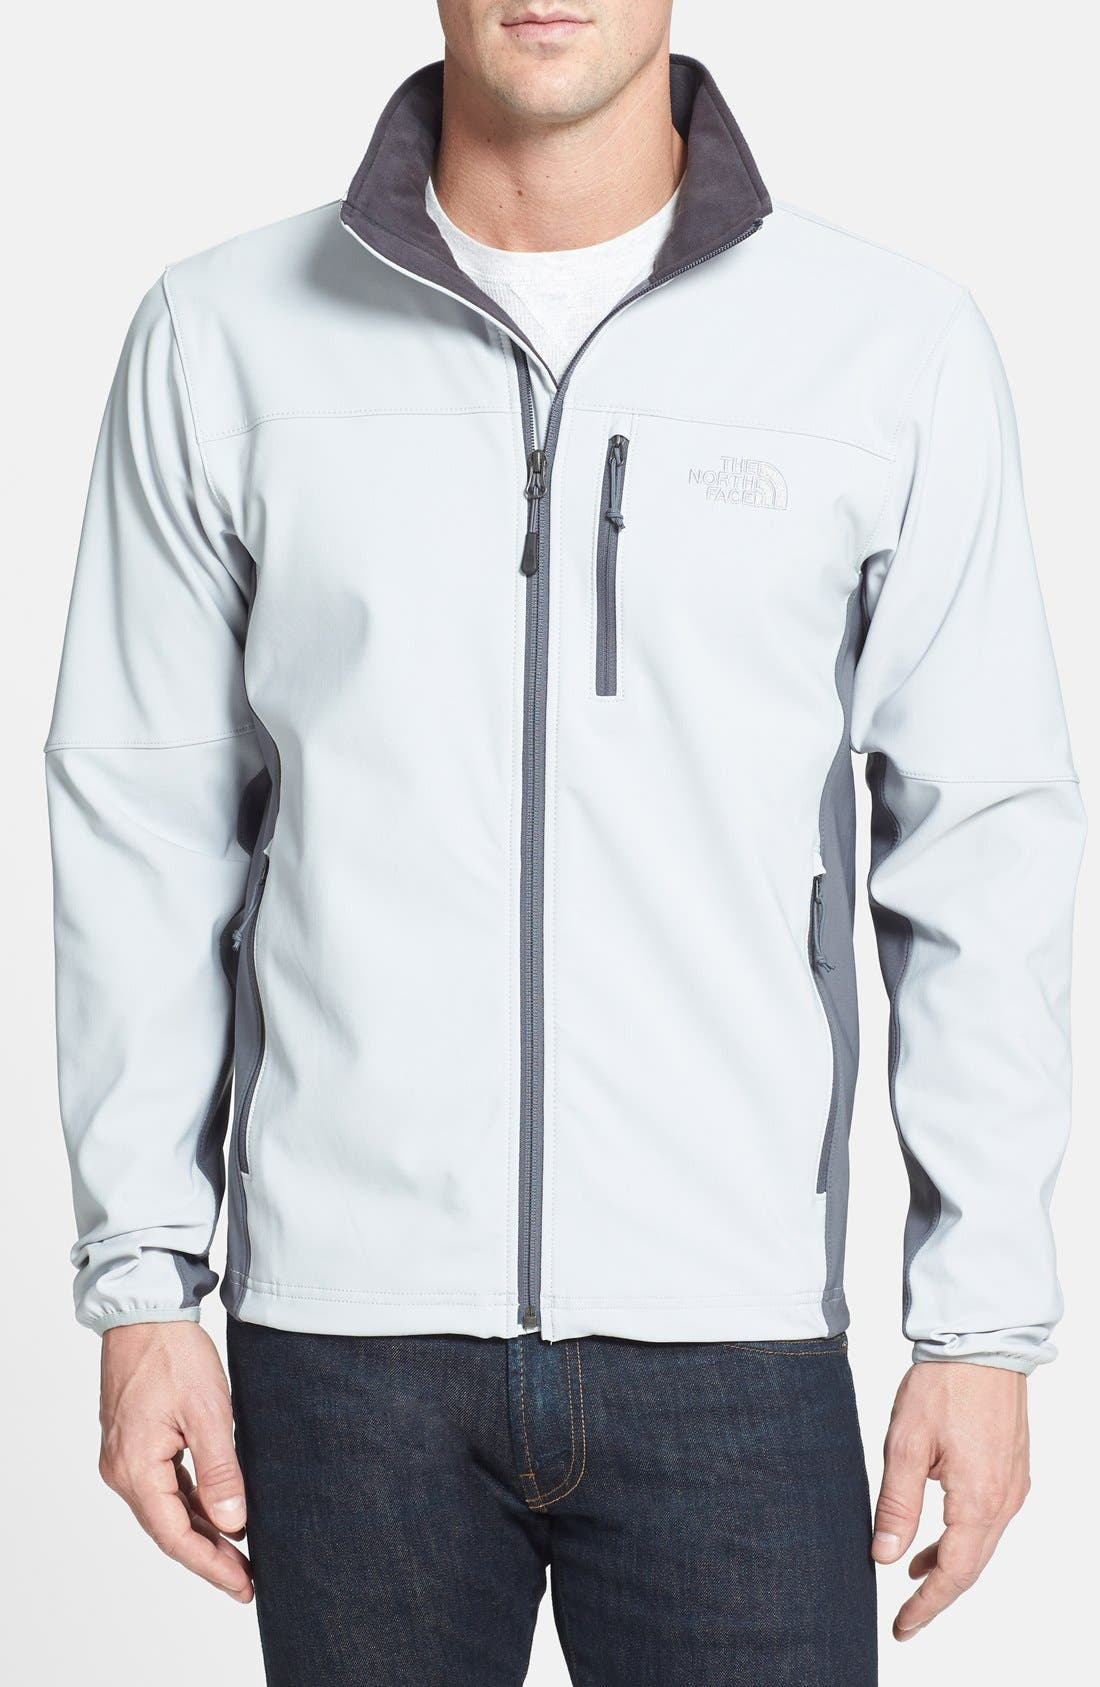 Alternate Image 1 Selected - The North Face 'Apex Pneumatic' Jacket